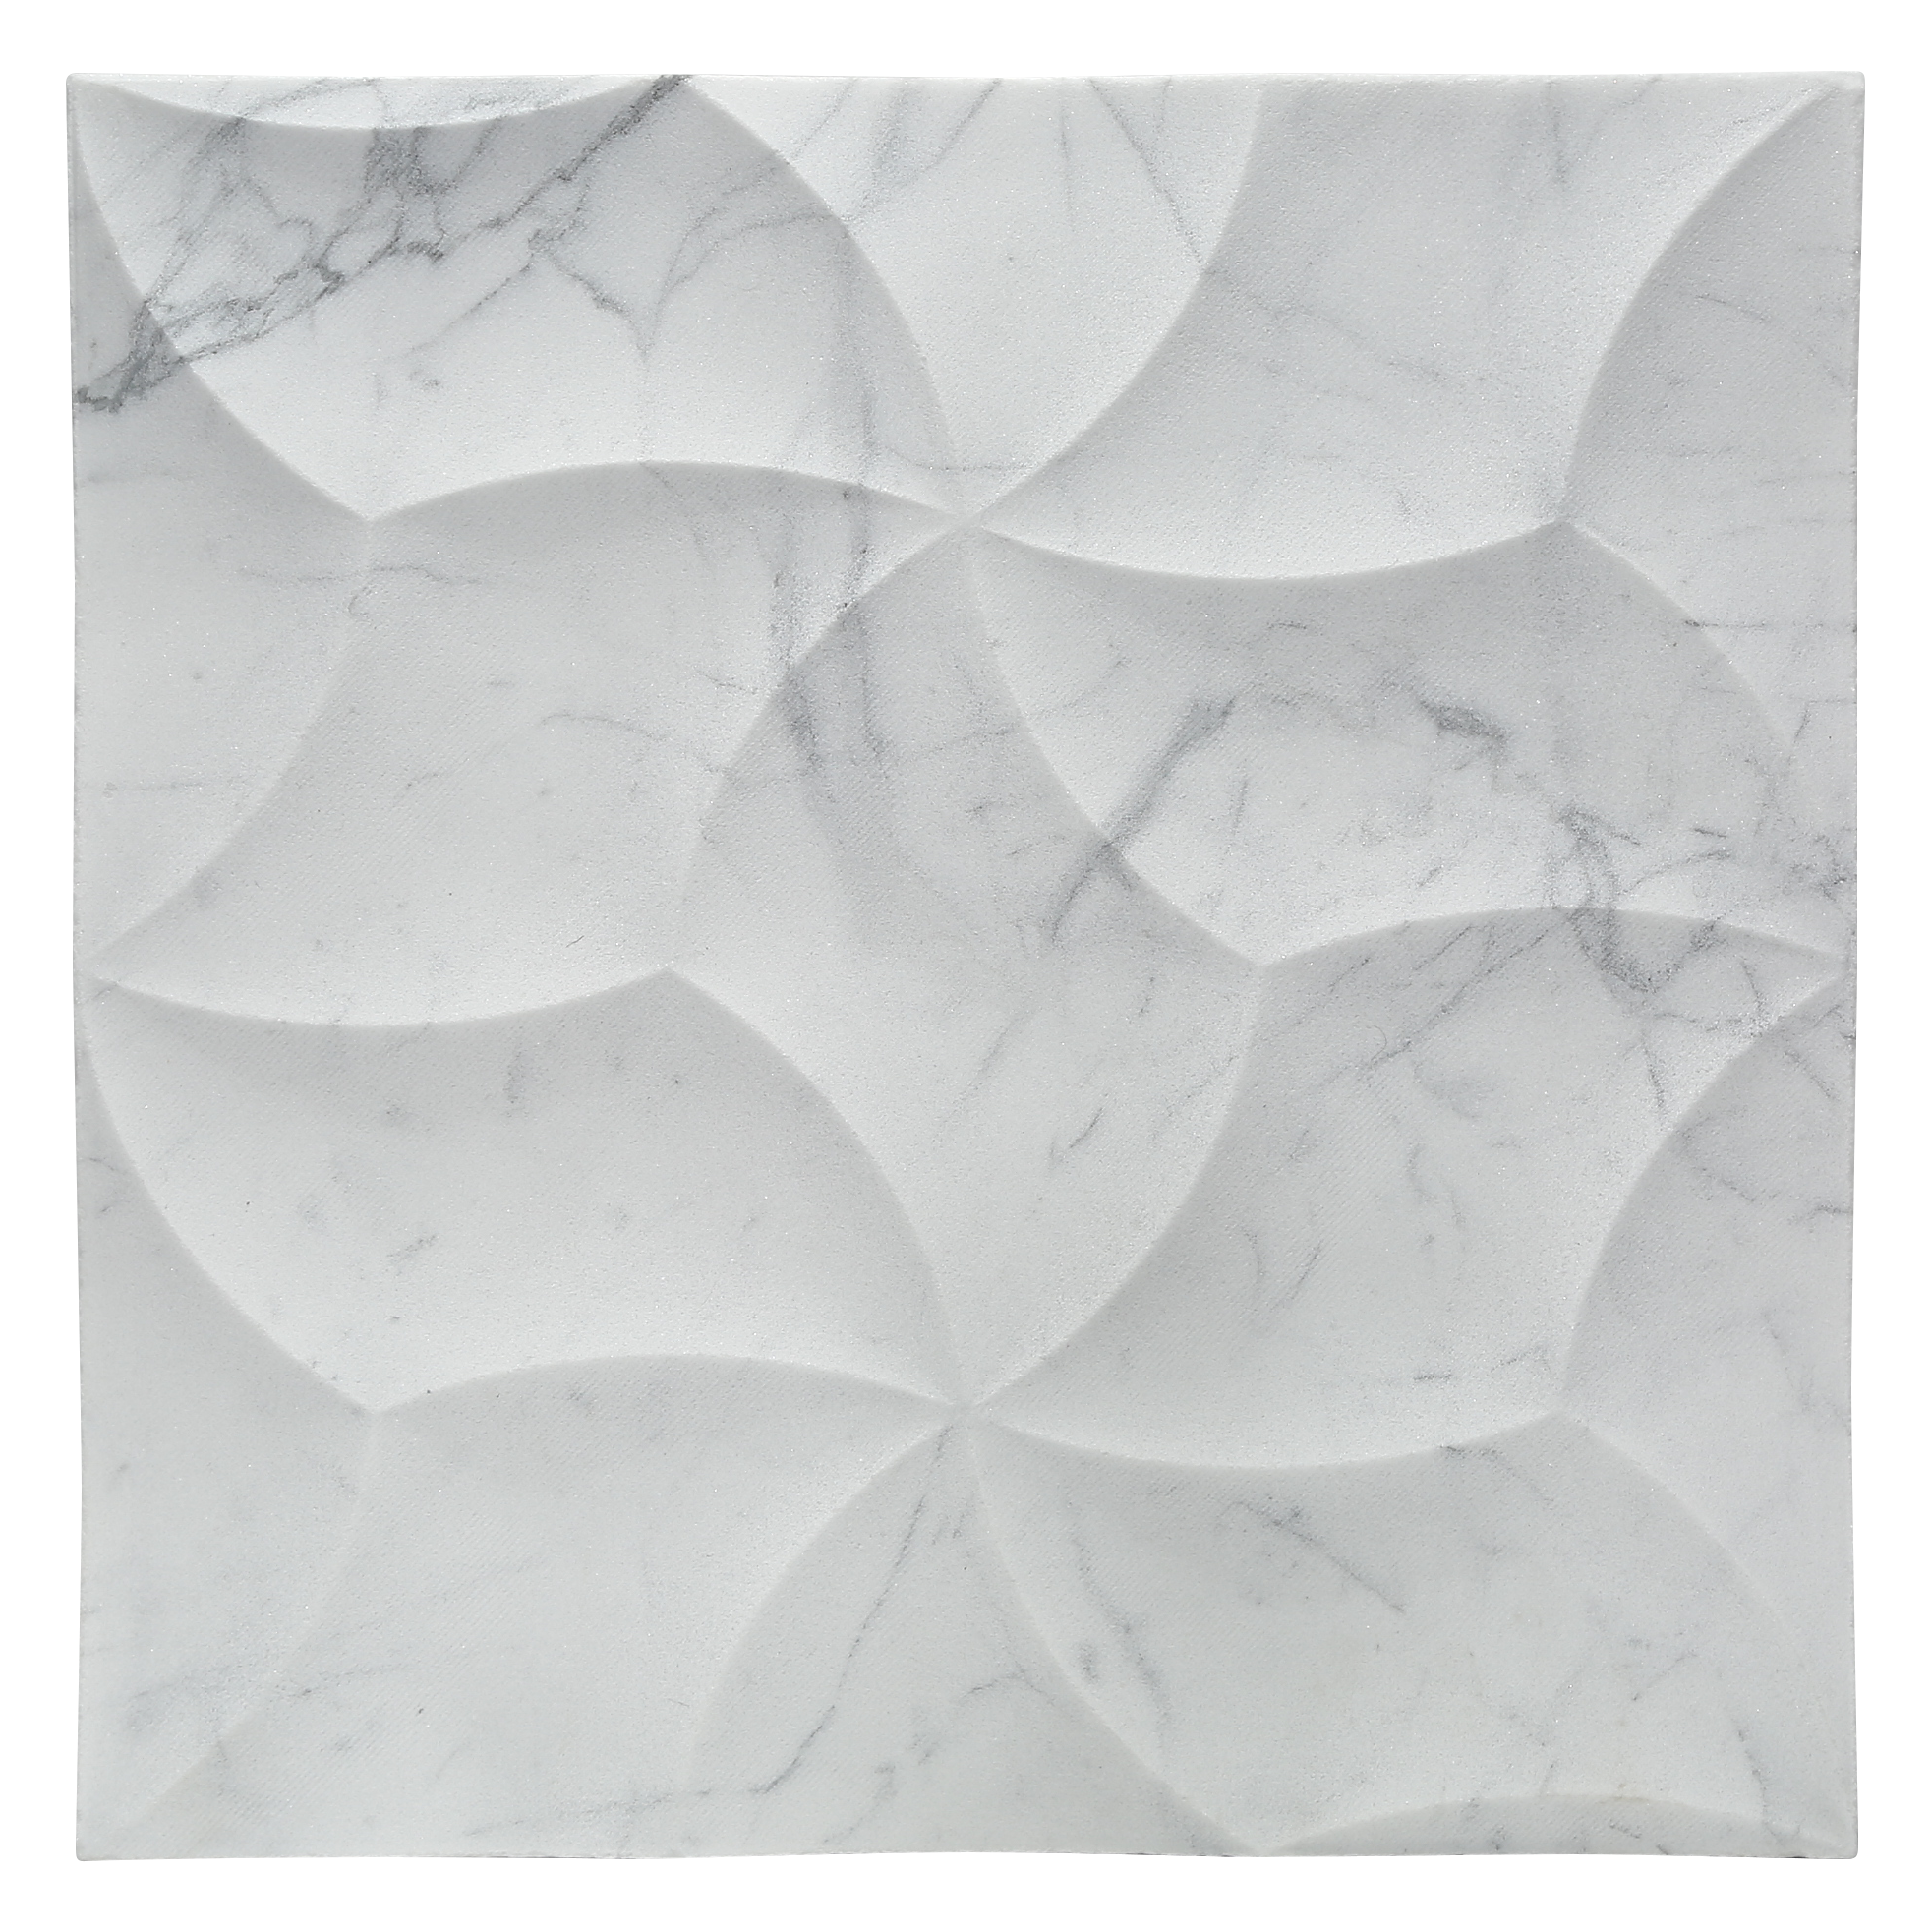 Bianco Carrera White Marble 12x12 3d Luxury Accent Wall Tile Shower Wall Tile Beautiful Tile Work 3d Wall Tiles